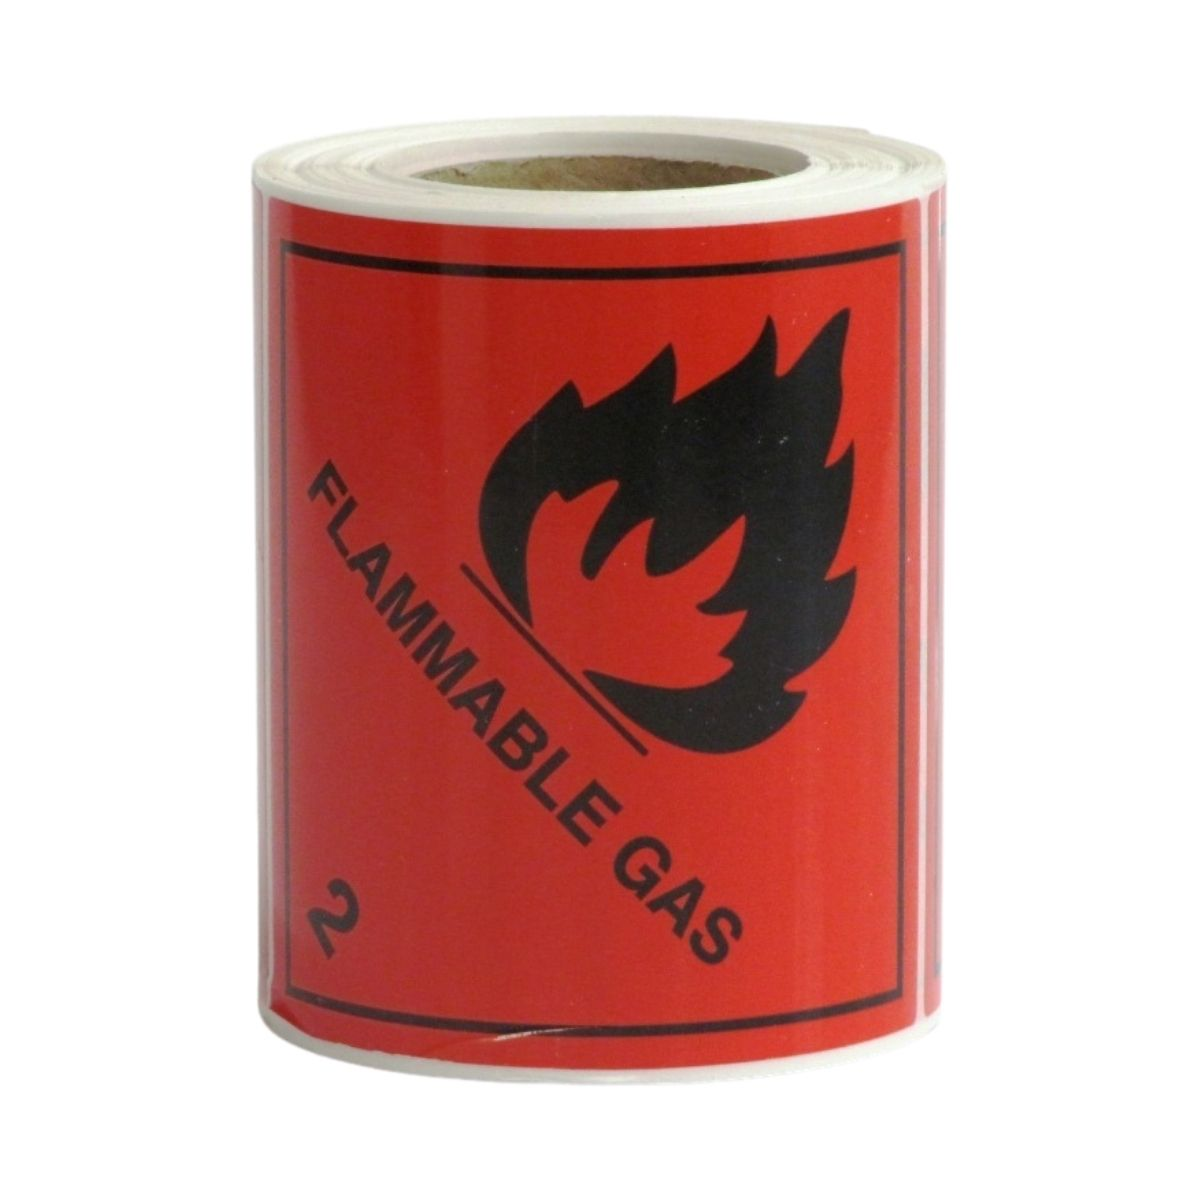 HD8230 UN Diamonds S_A on Roll 100 x 100mm 250 Labels Class 2 Flammable Gas